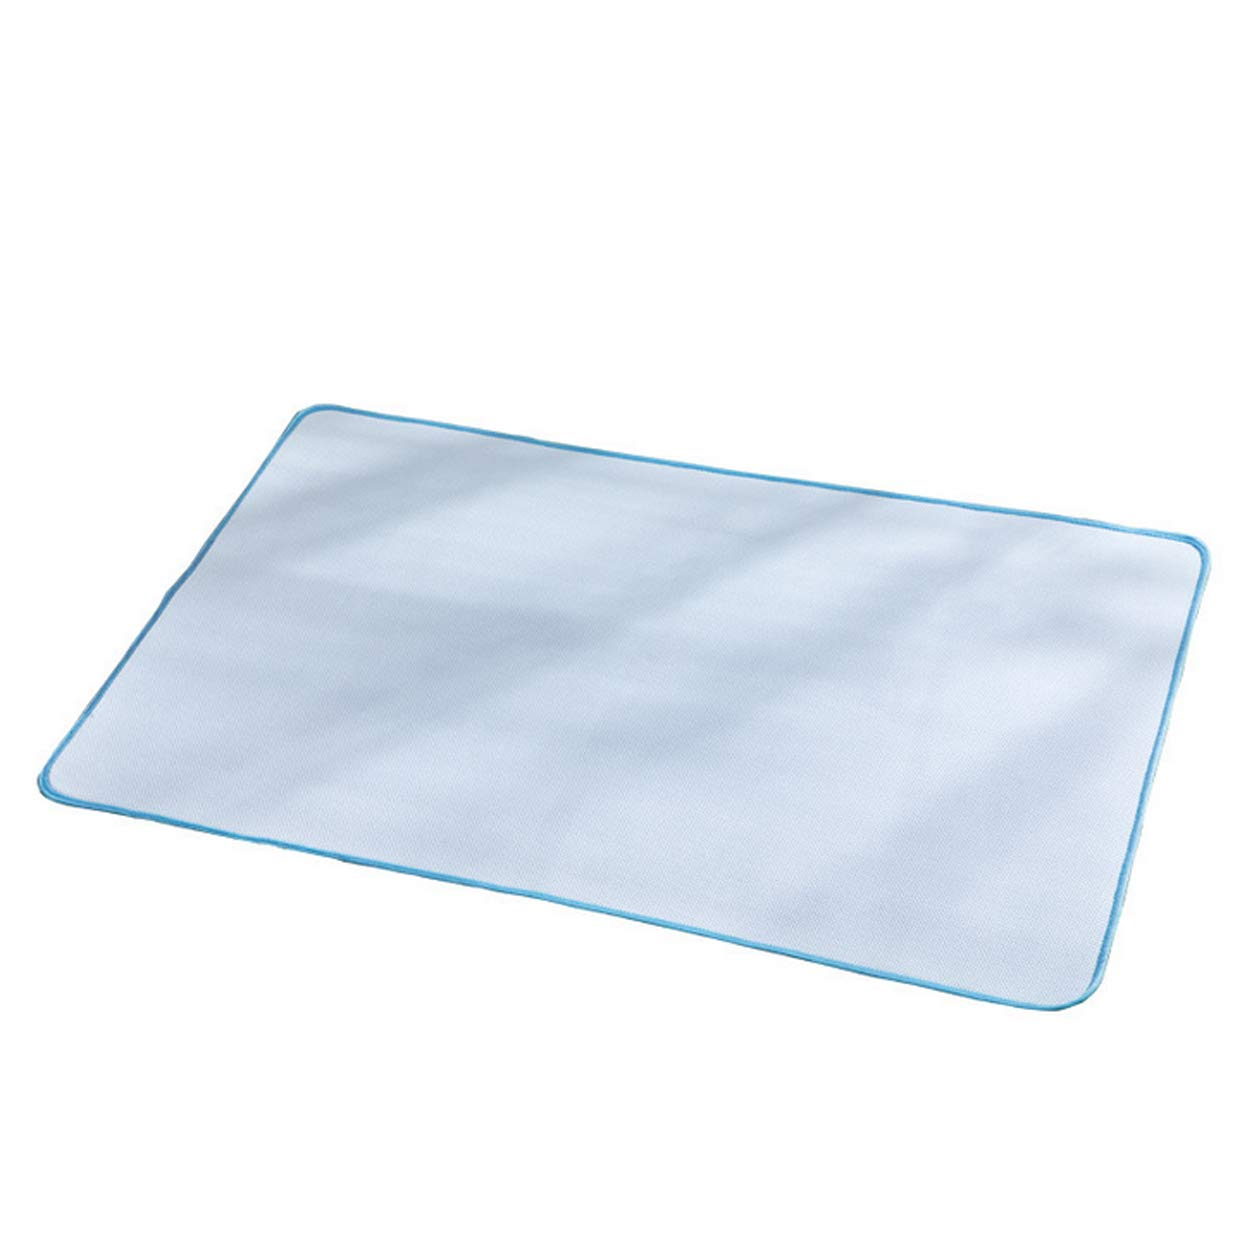 Ggsrtesxs Adult Absorbent Premium Quality Bed Pad Bamboo Fiber Three-Layer Non-Slip Sheets Quilted Waterproof Reusable Washable,Light Blue,60x90cm by Ggsrtesxs